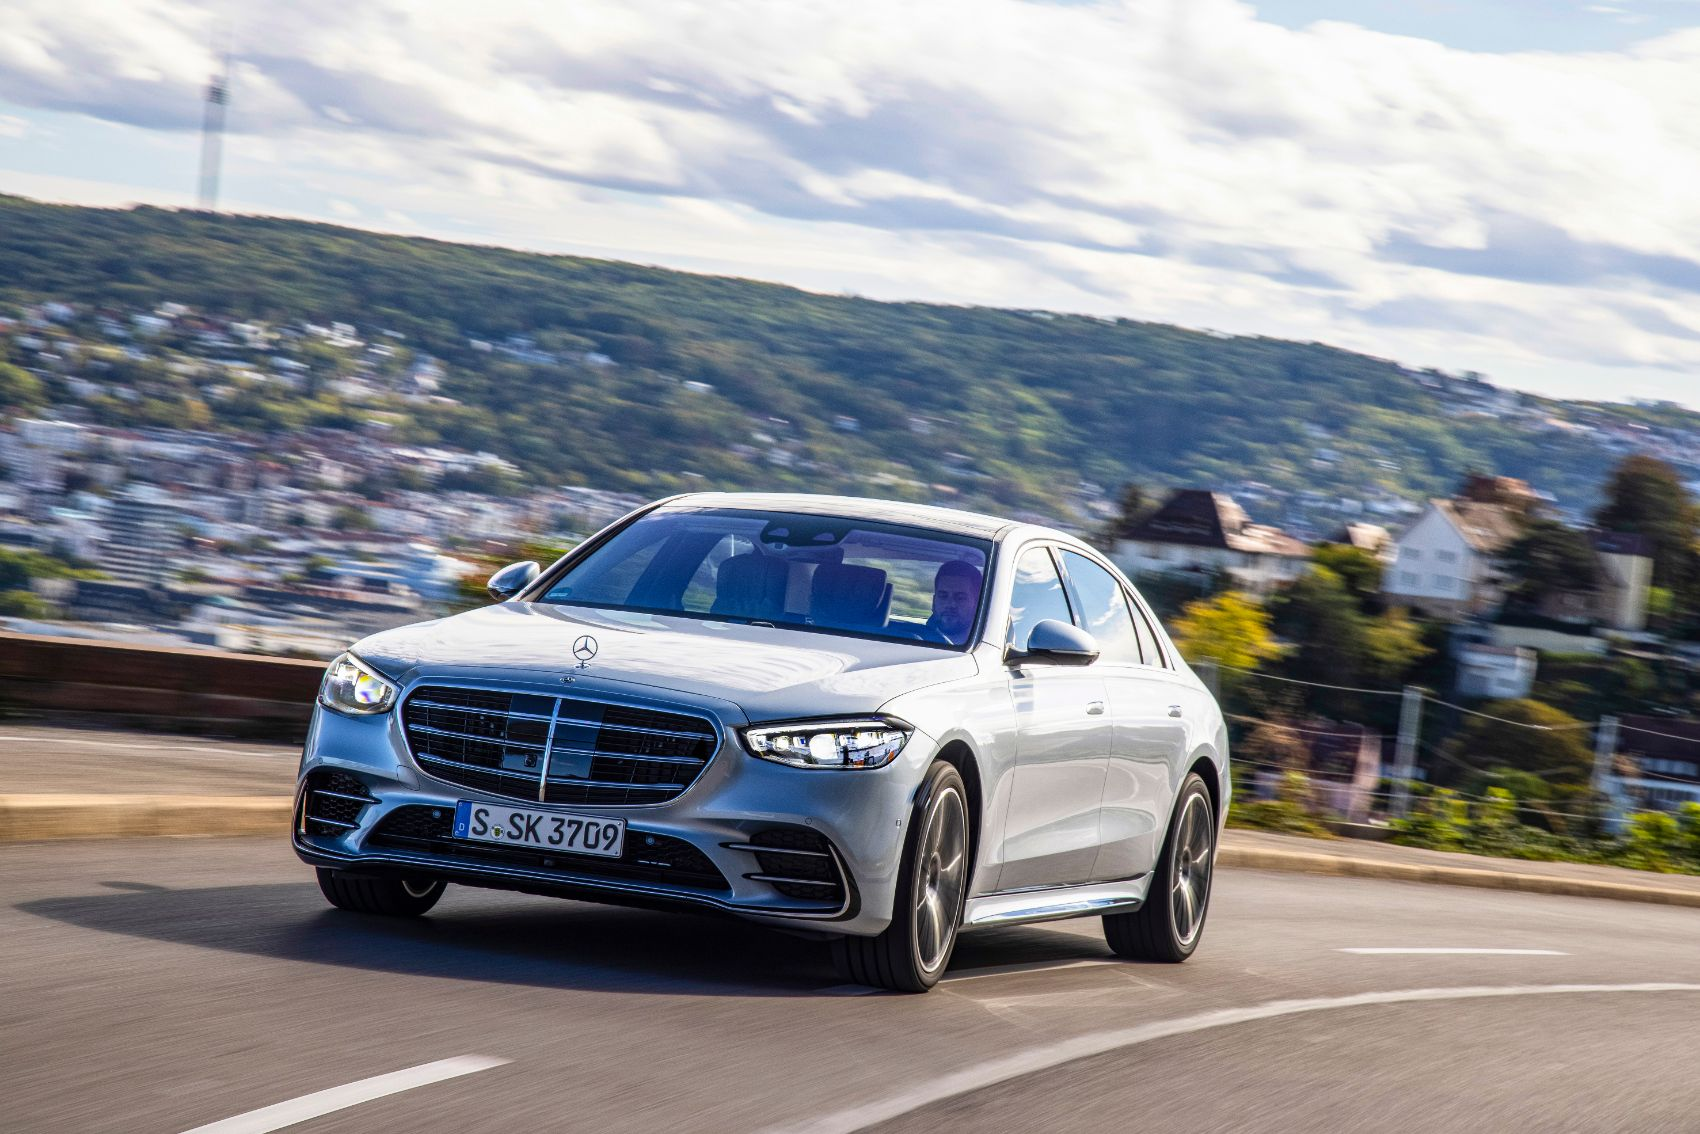 2021 Mercedes-Benz S-Class Overview: Pricing, Trim Levels, New Standard Features & More